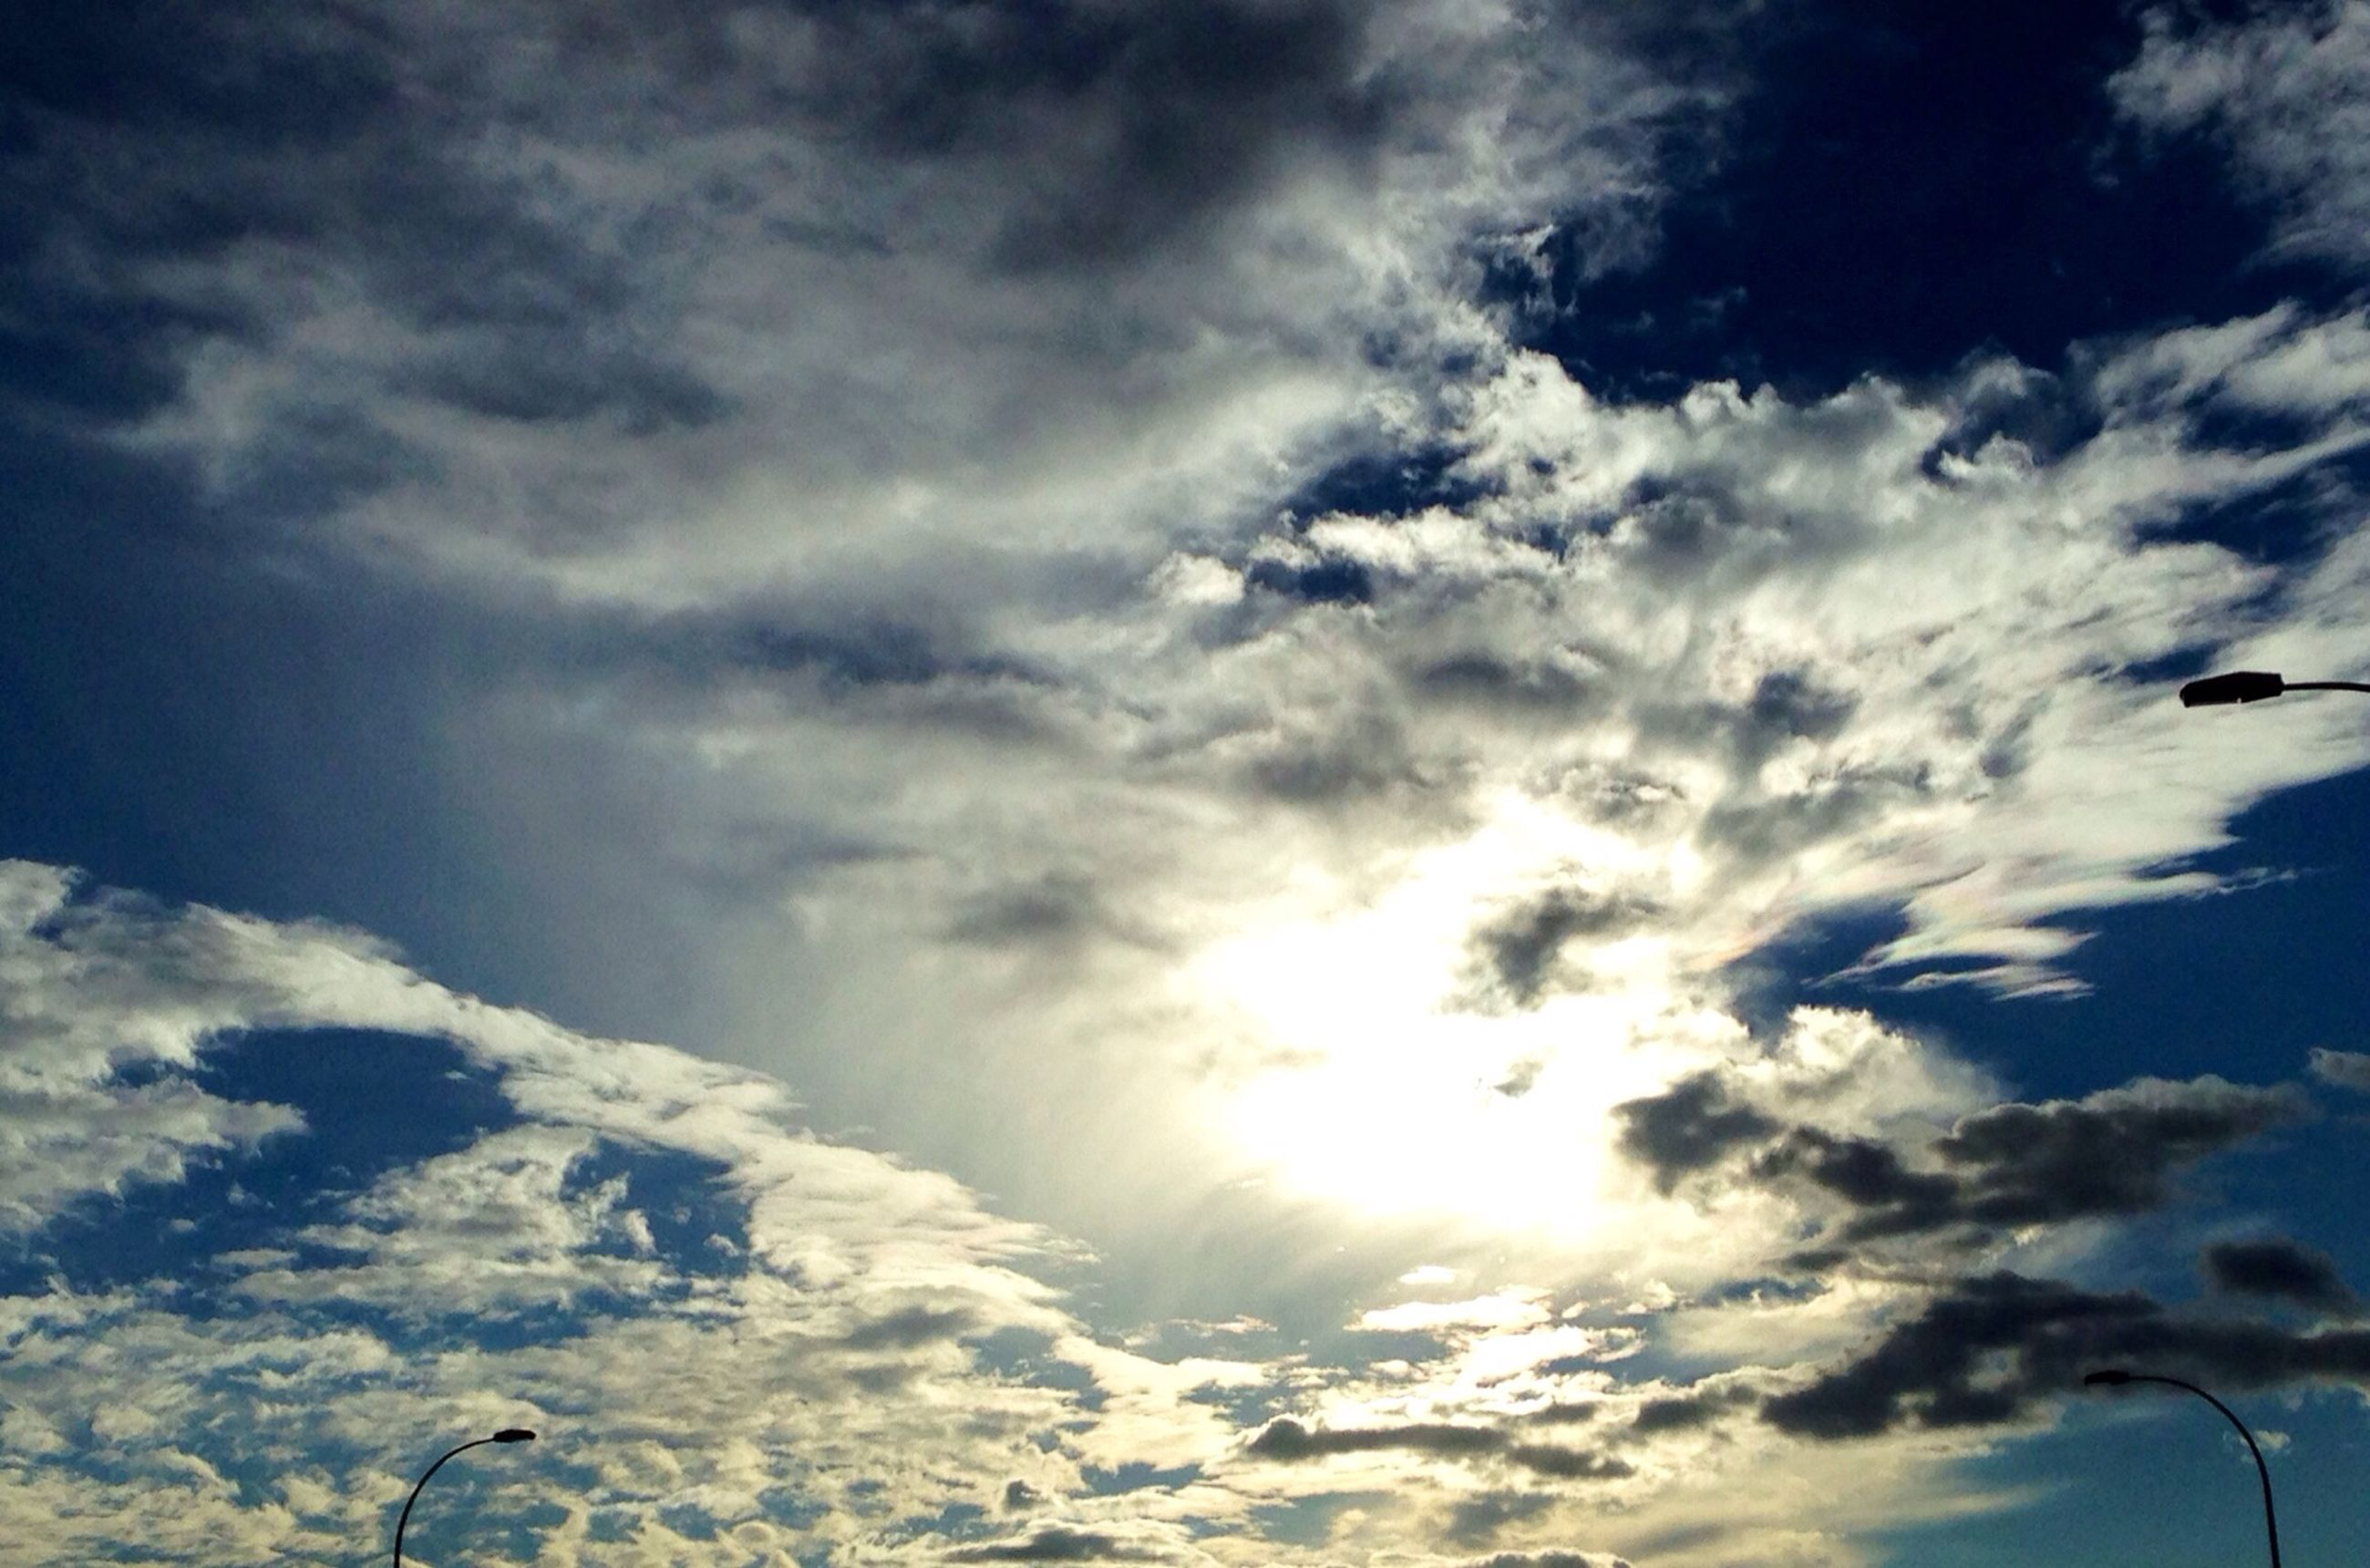 low angle view, sky, cloud - sky, beauty in nature, cloudy, scenics, nature, tranquility, sky only, sun, cloud, sunbeam, cloudscape, tranquil scene, sunlight, blue, idyllic, outdoors, no people, day